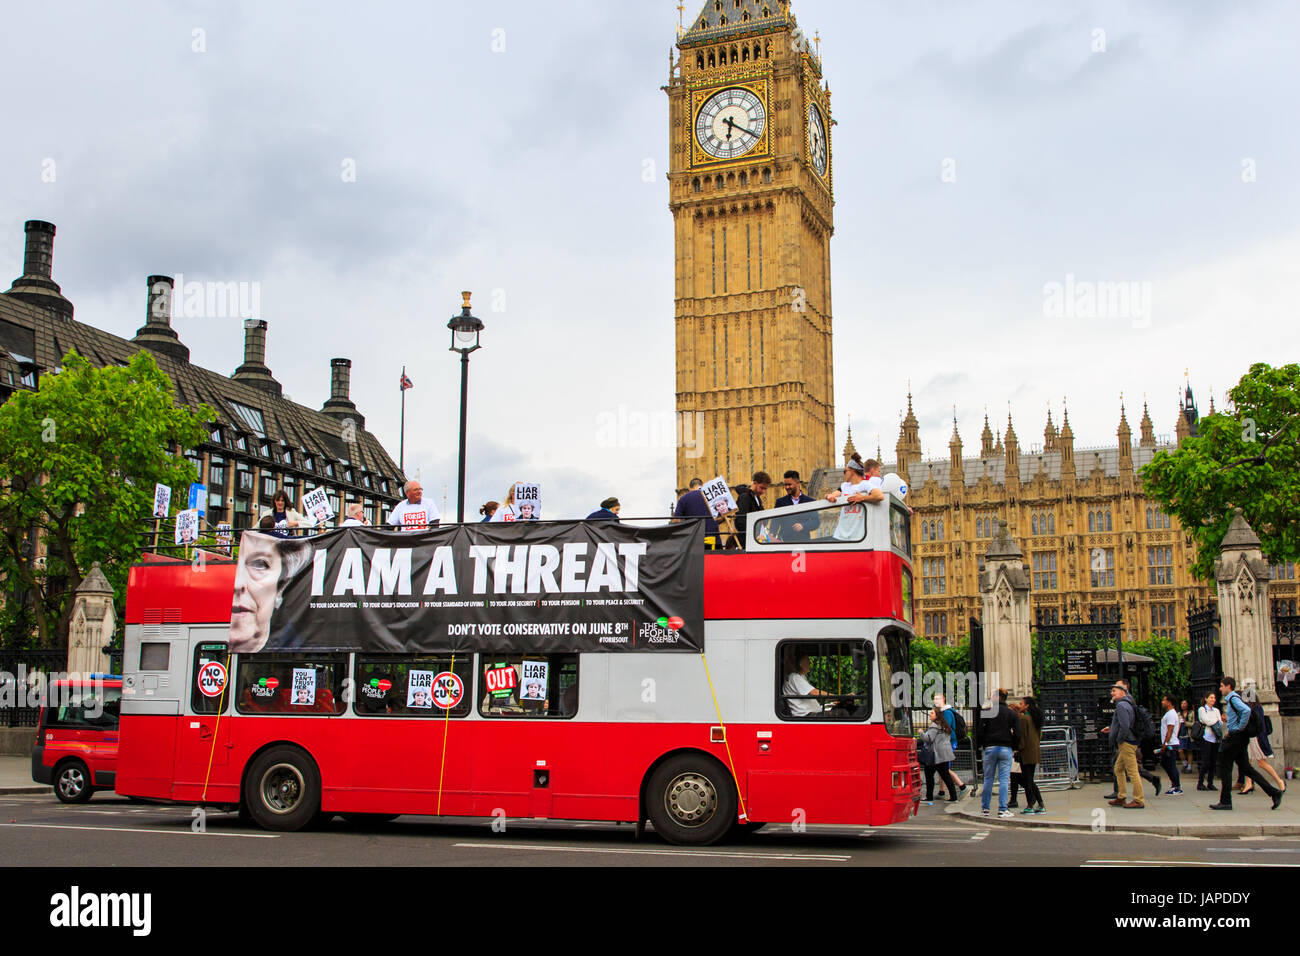 Westminster, London, UK, 7th June 2017. A red double decker bus branding Theresa May a 'Threat' travels - Stock Image